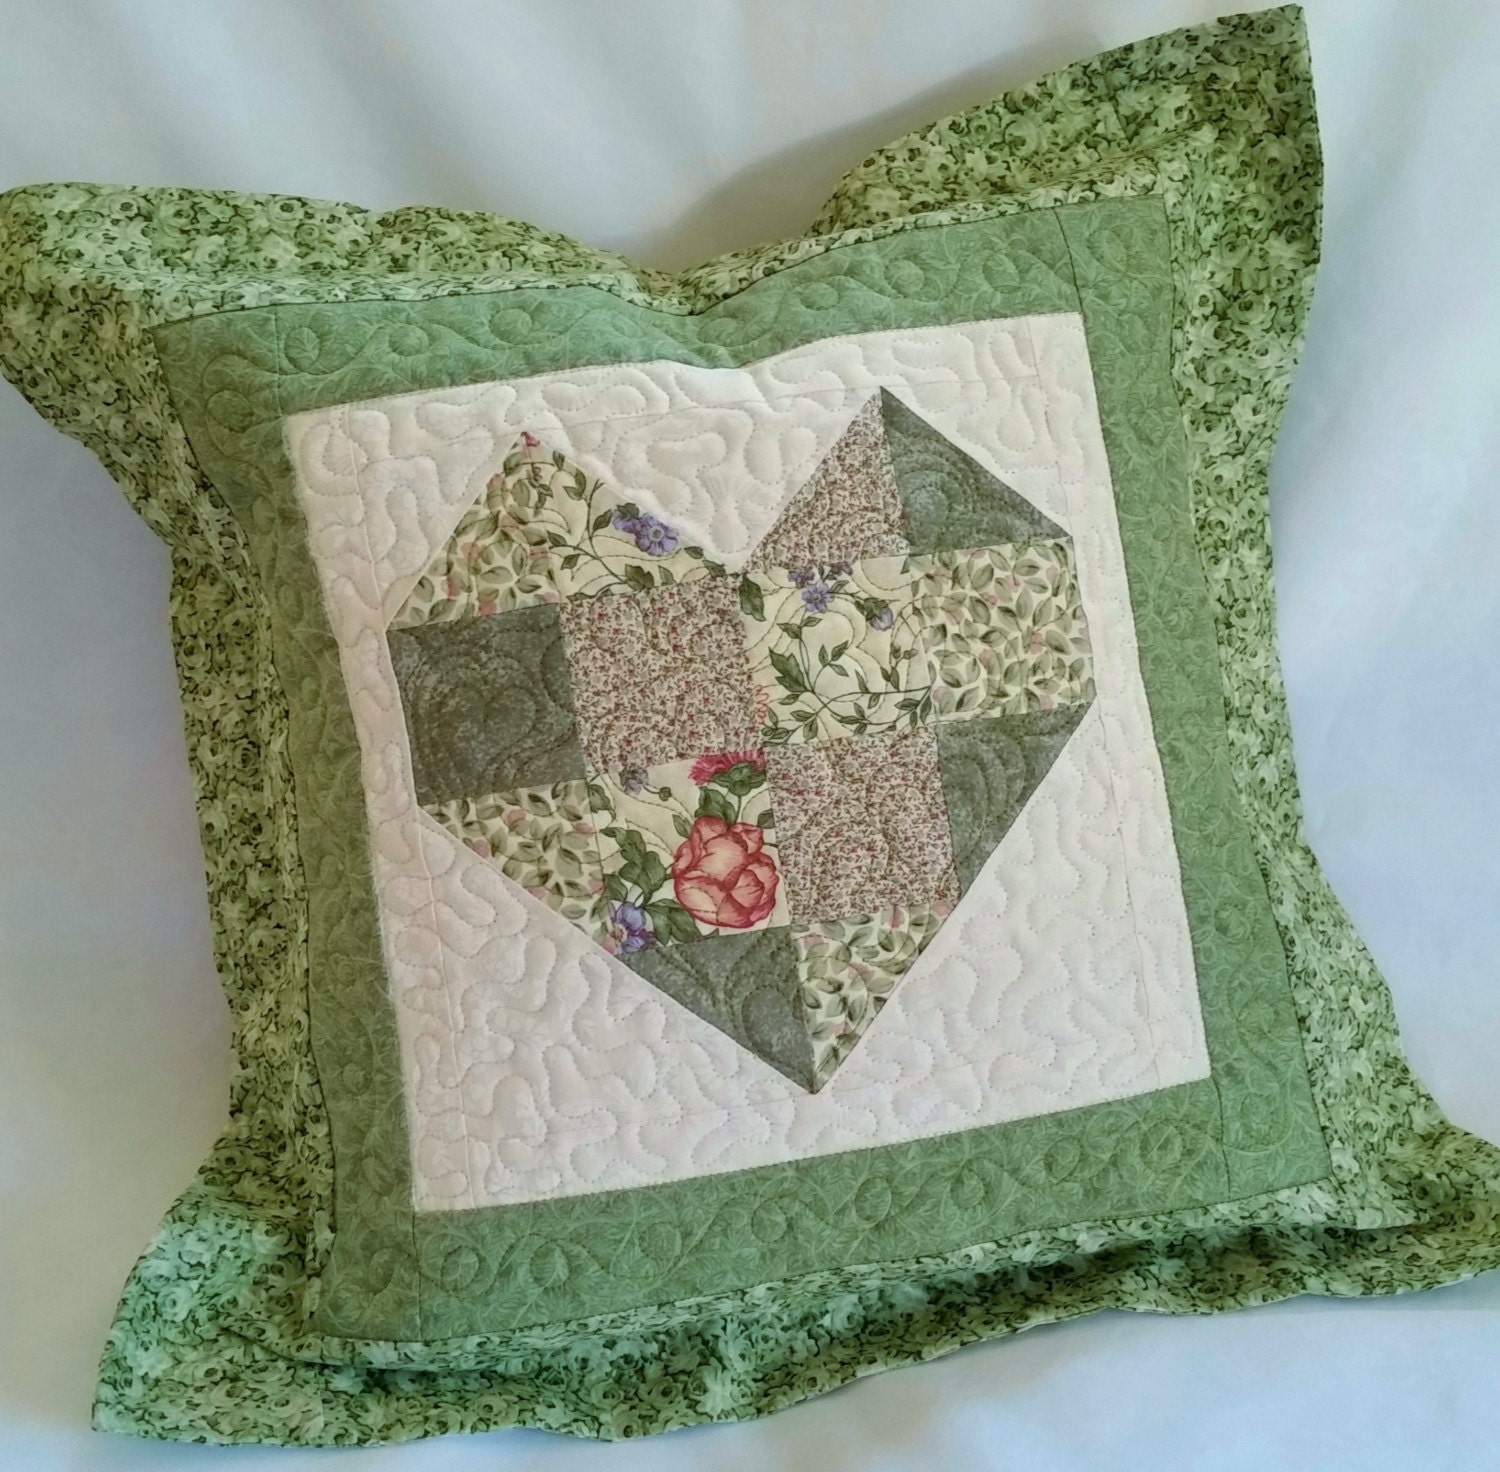 Shabby Chic Heart Pillows : Green Floral Heart Pillow Shabby Chic Quilted Pillow Cushion